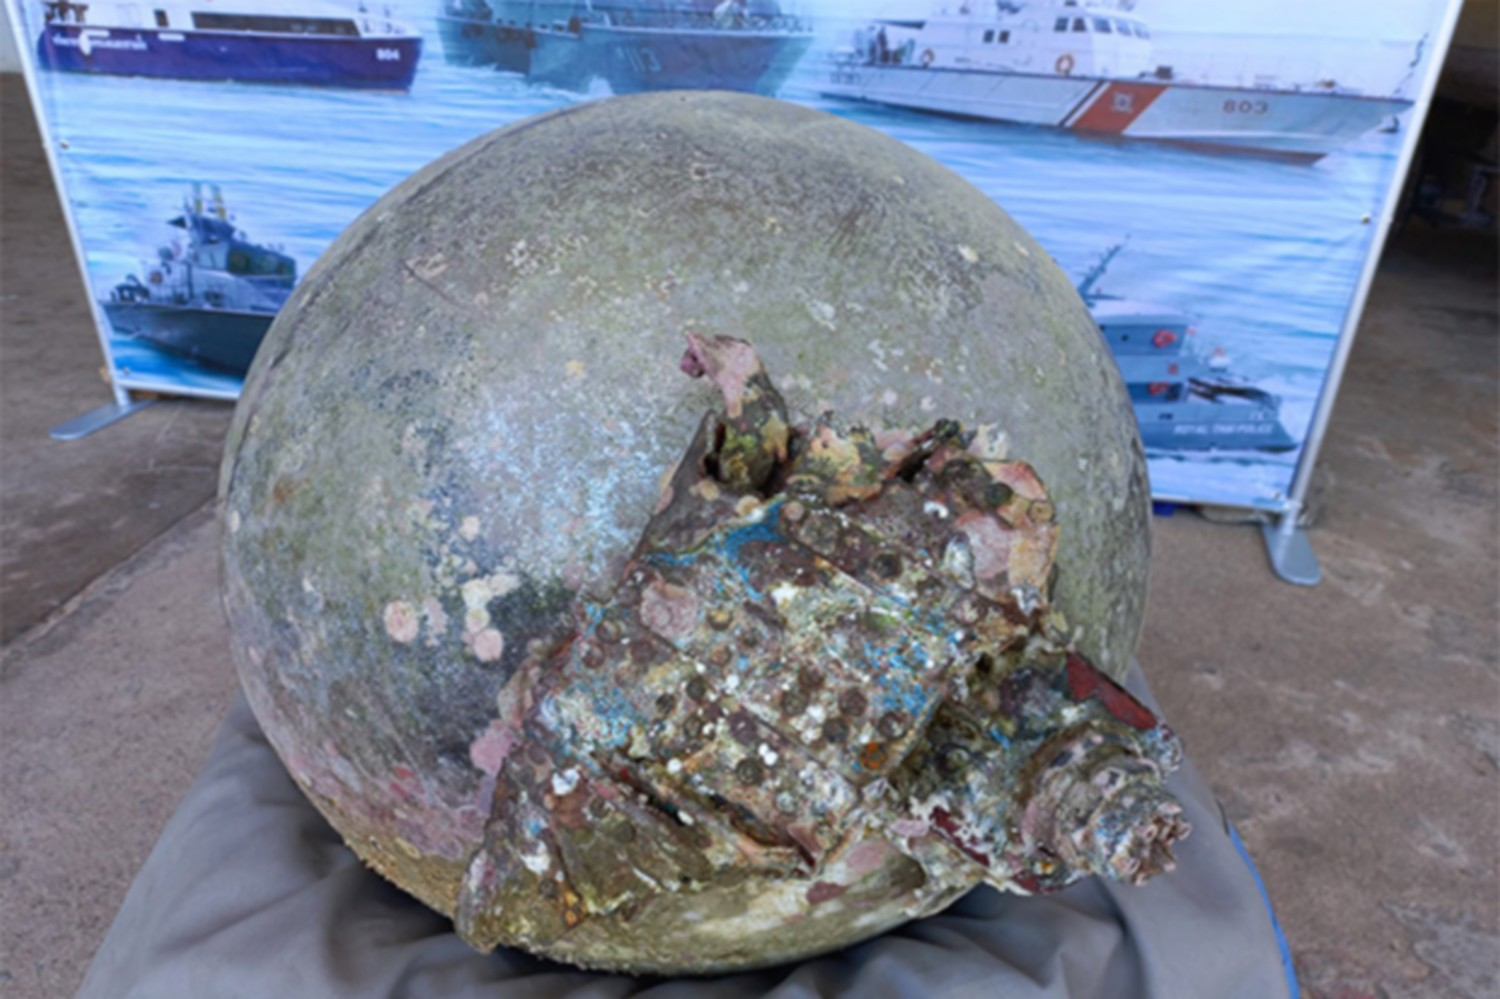 Space junk found in sea off Phuket